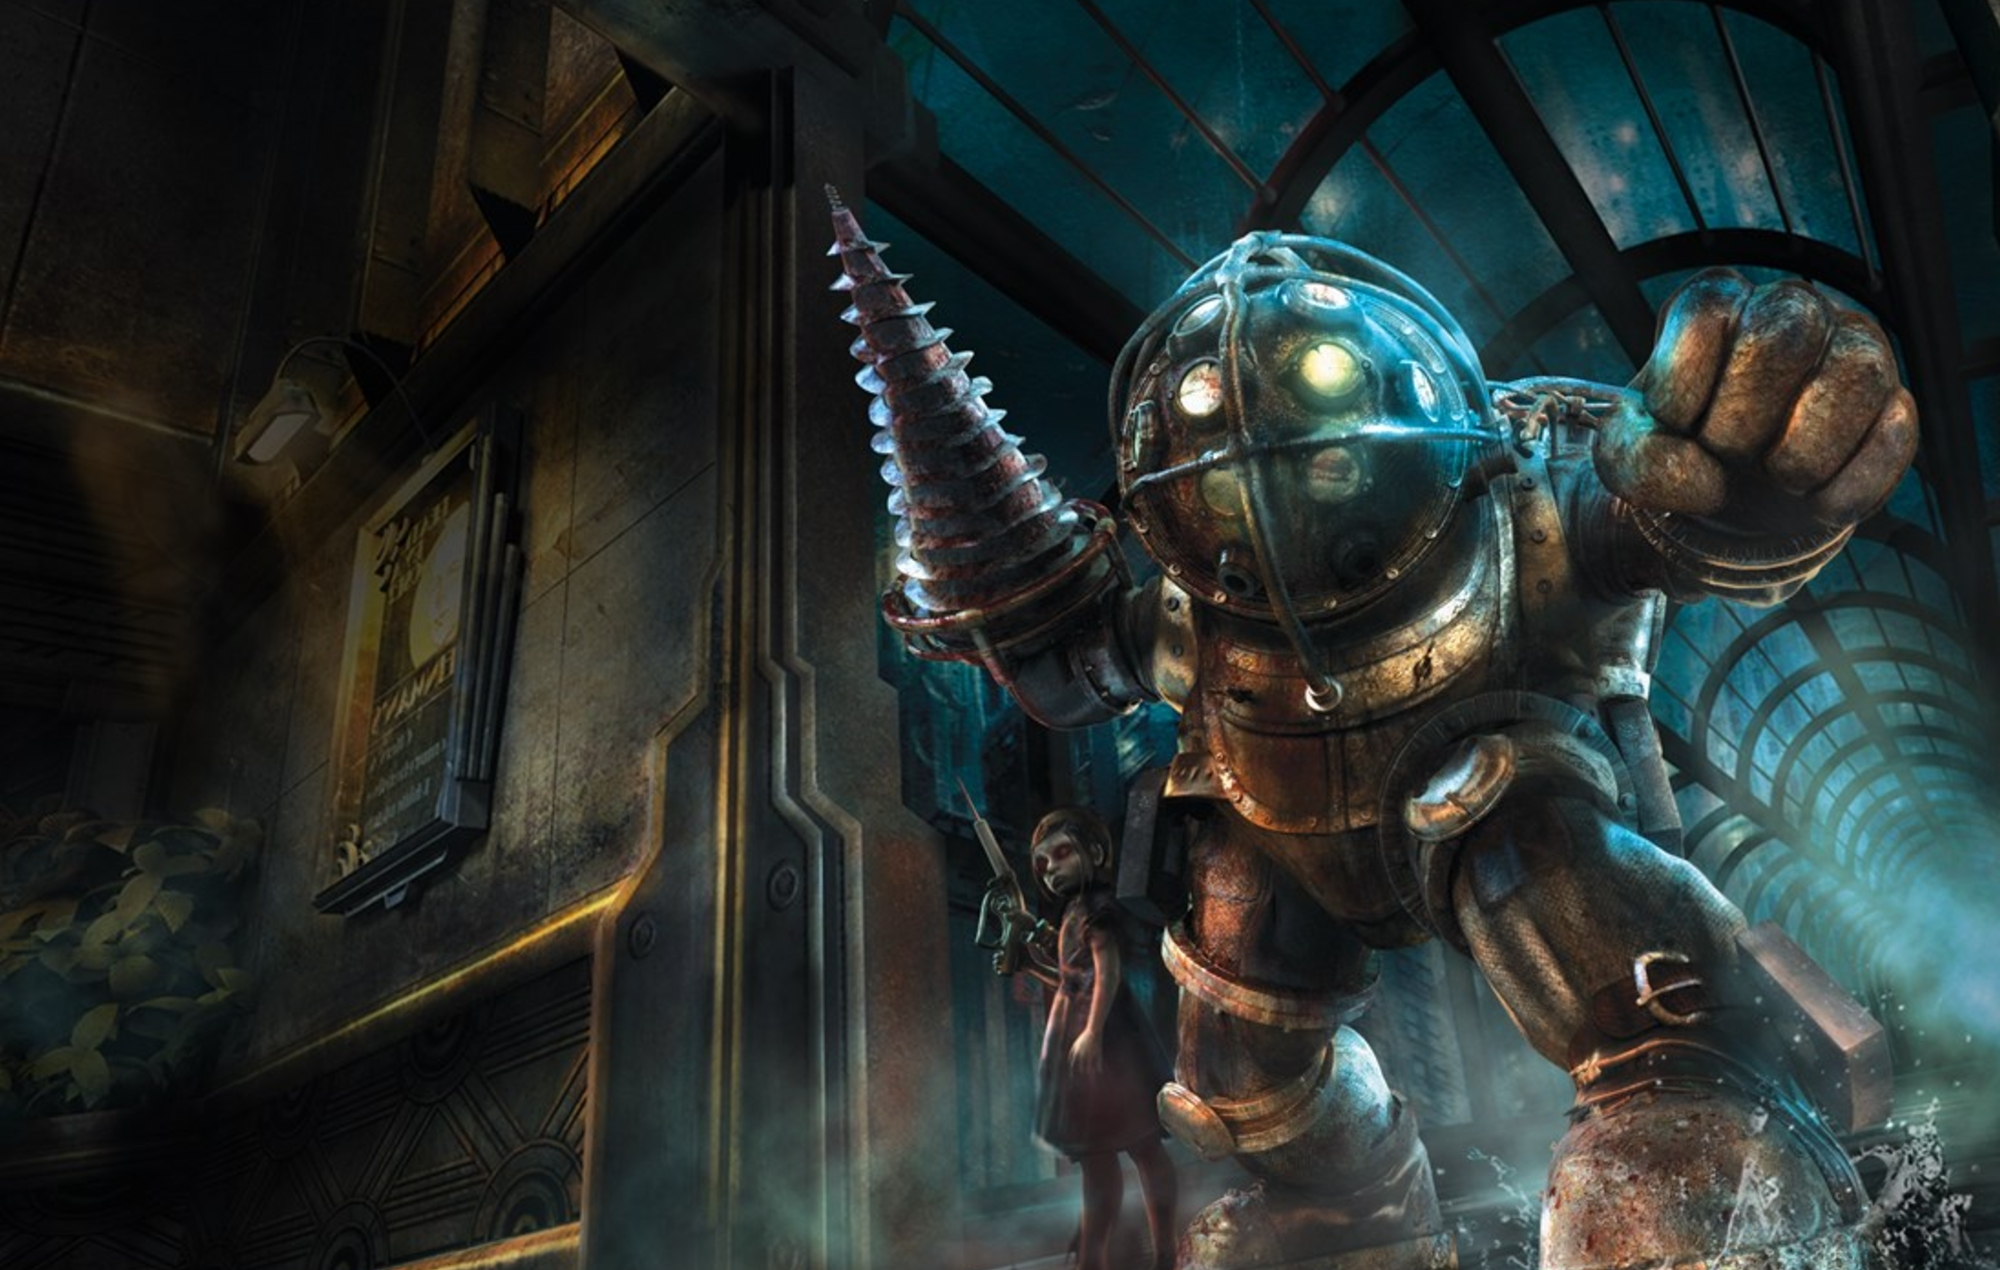 'BioShock 4' will reportedly